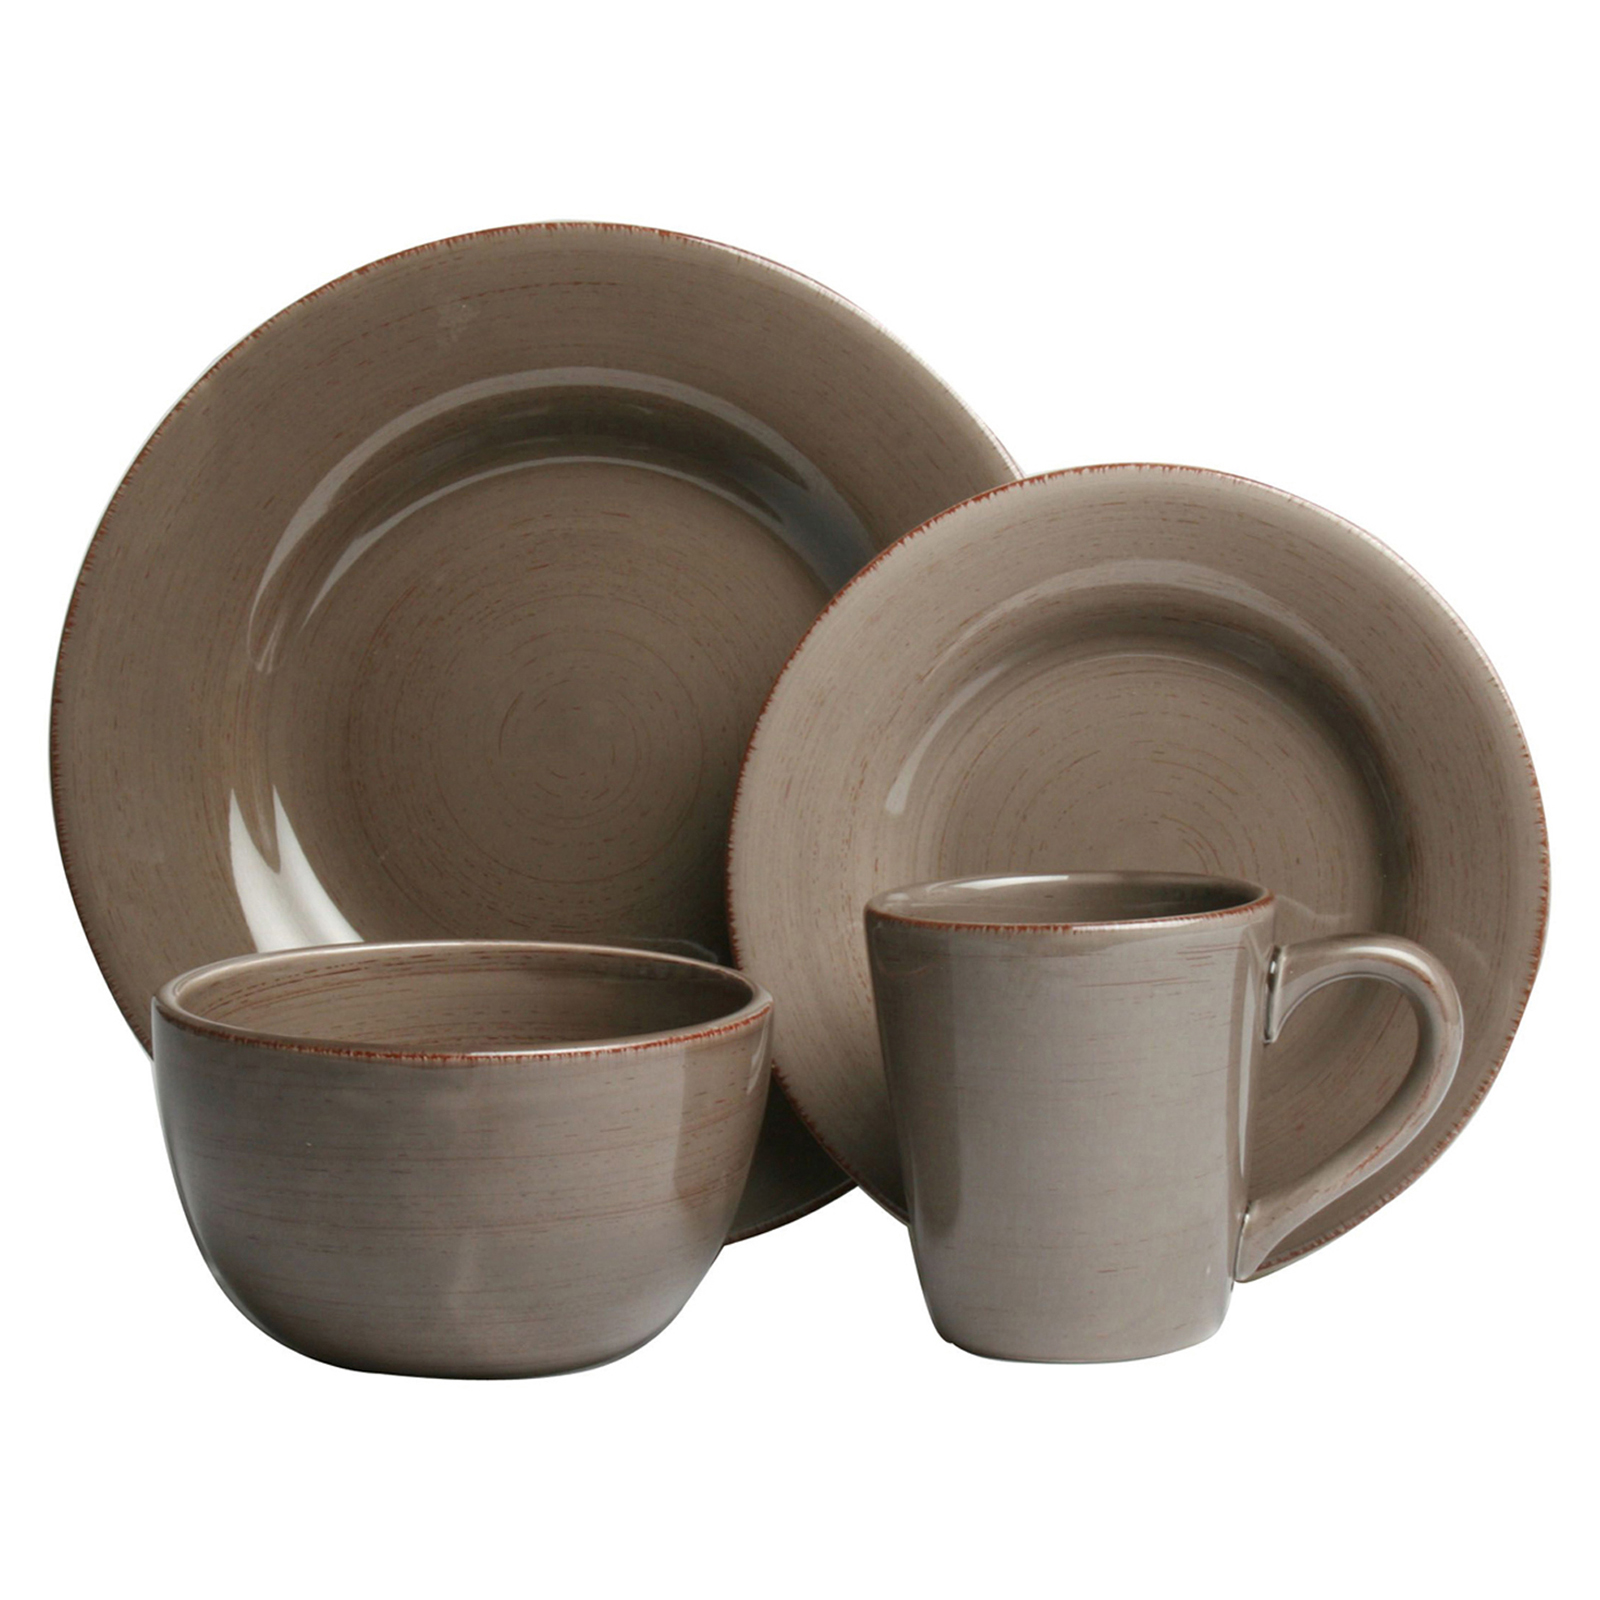 Tag Sonoma 16 Piece Dinnerware Set  sc 1 st  Hayneedle & Solids Dinnerware Sets | Hayneedle